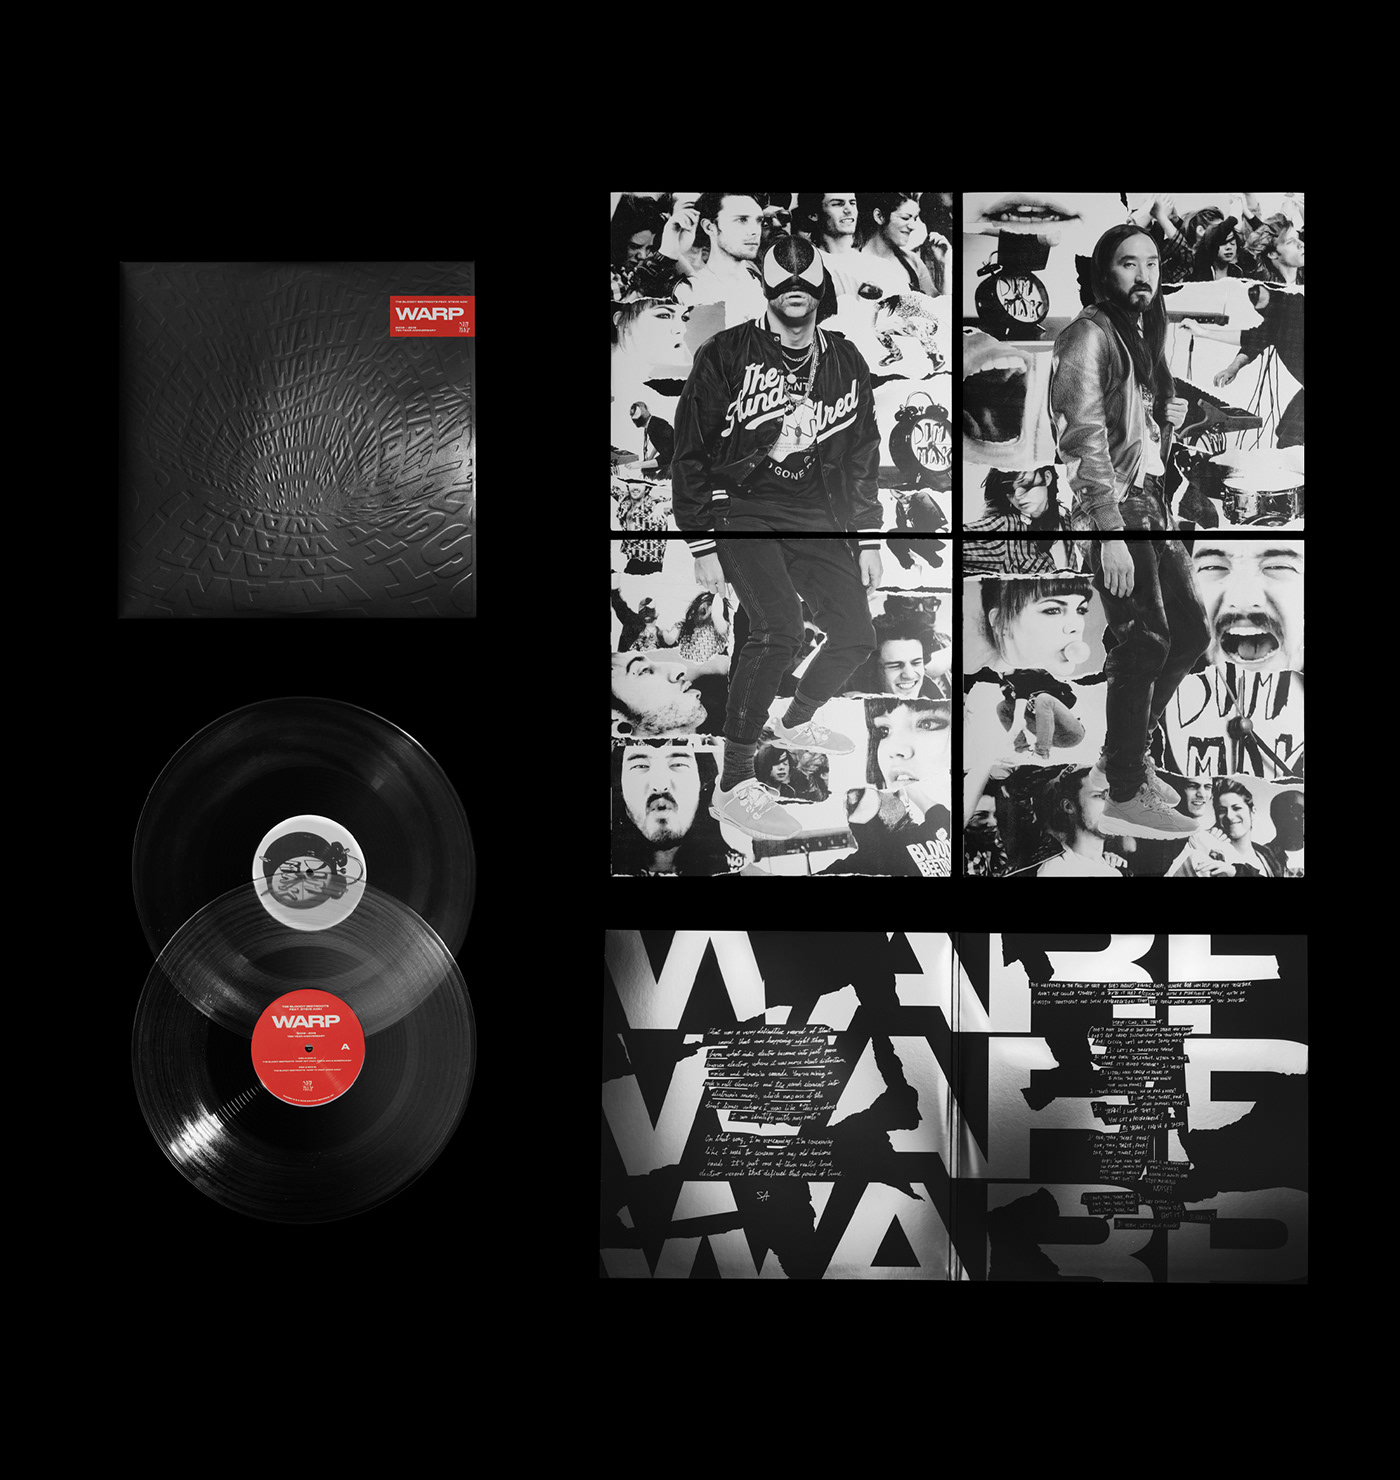 Monochrome Album Design for WARP - Steve Aoki and cie